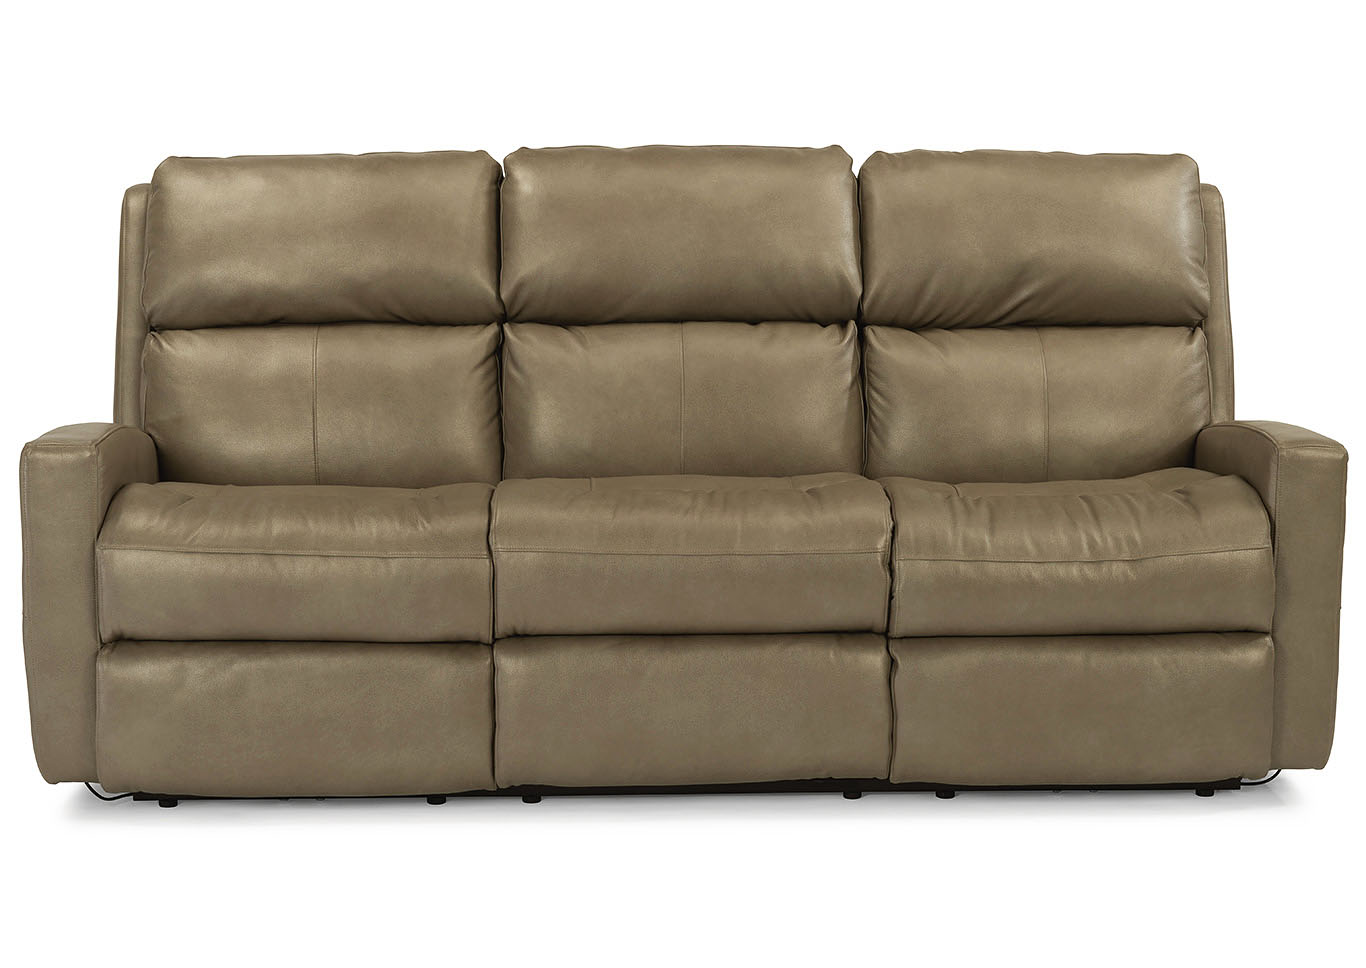 Fine Country House Furniture Catalina Leather Power Reclining Sofa Dailytribune Chair Design For Home Dailytribuneorg